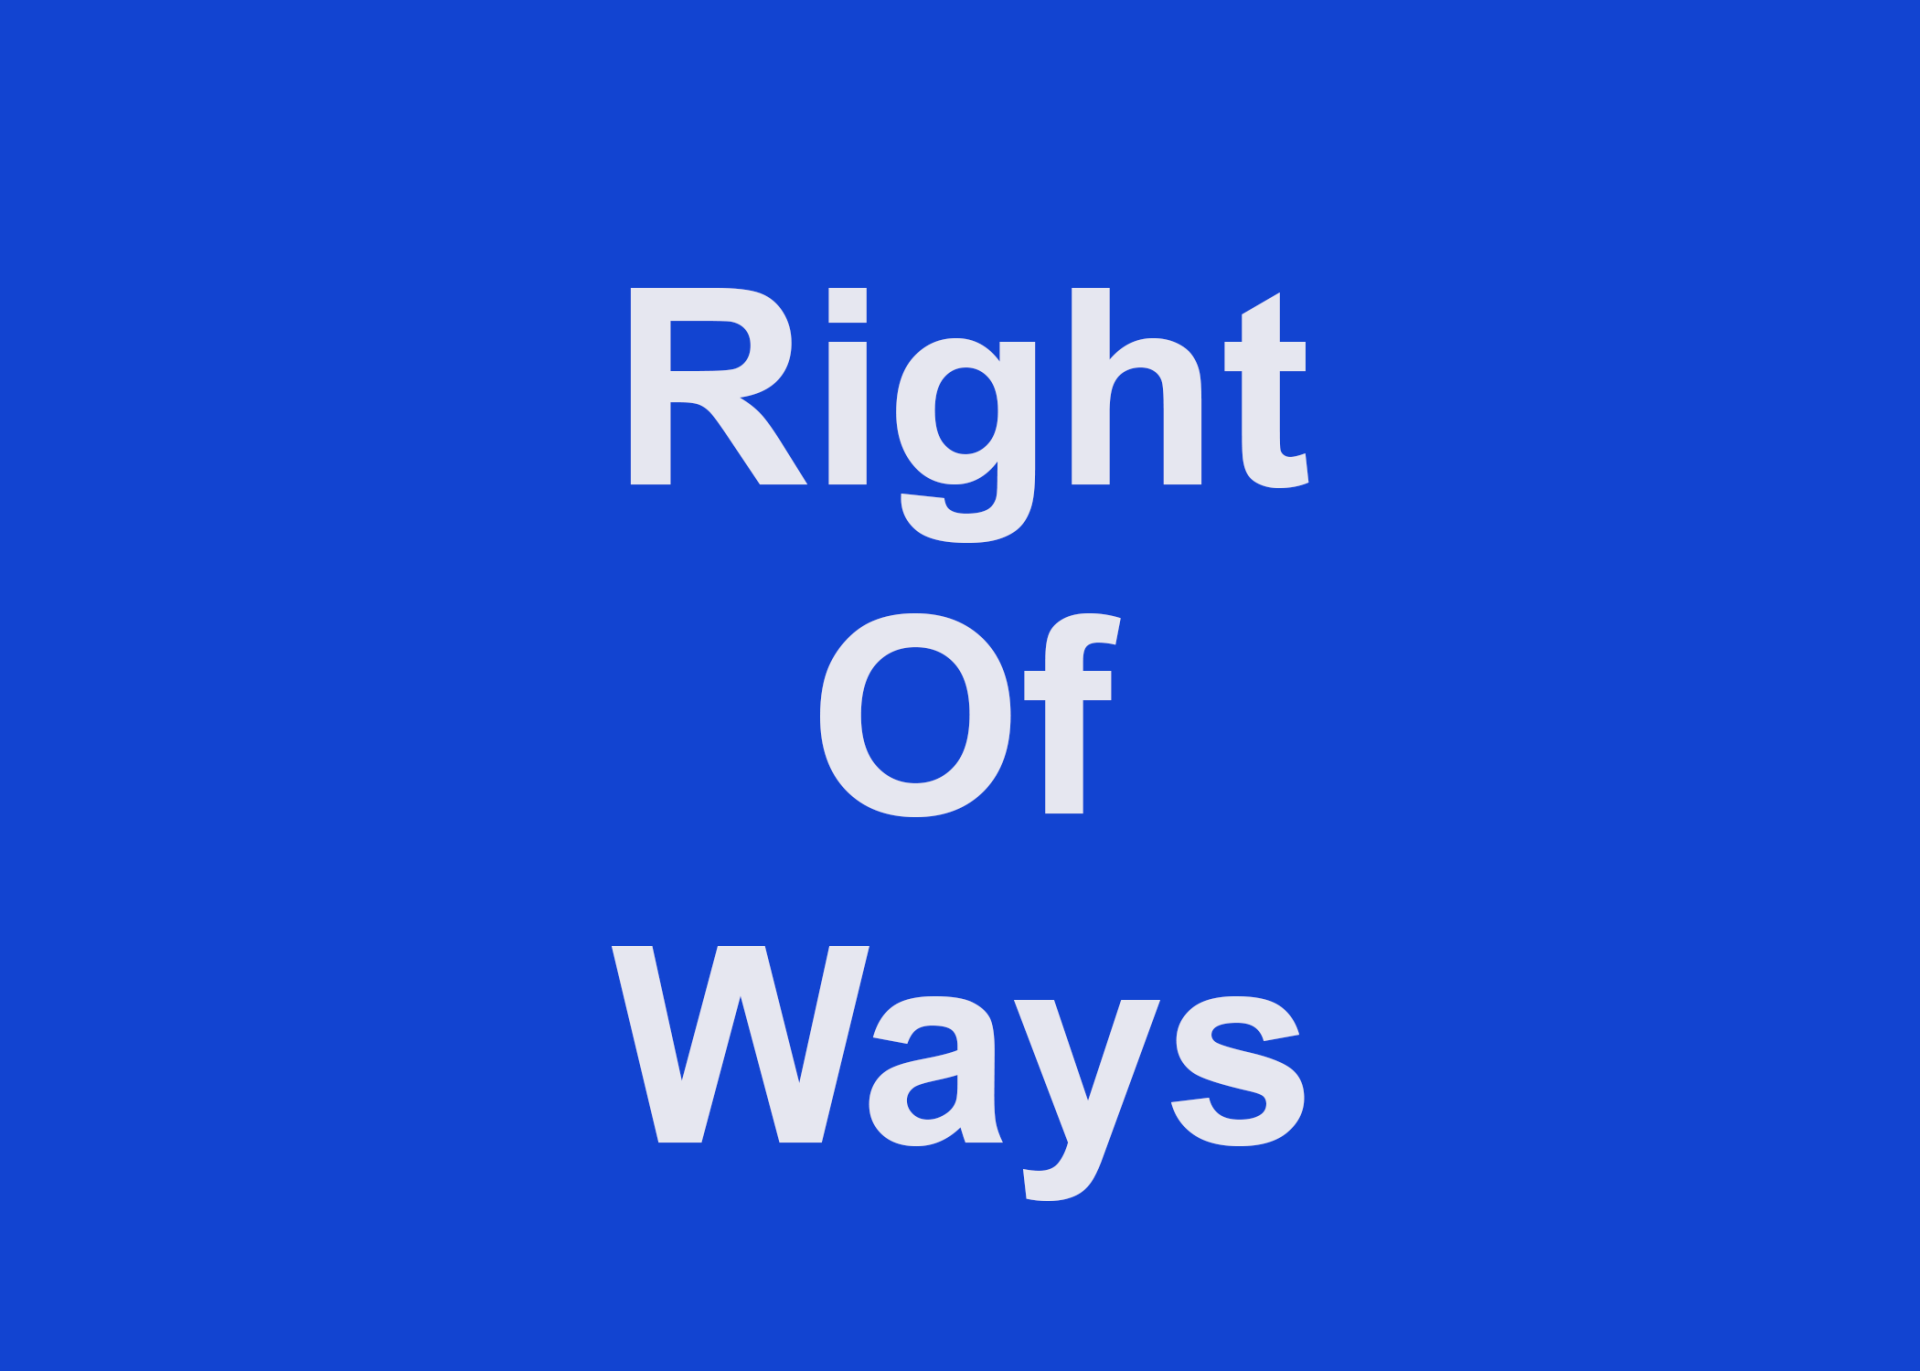 Right of Ways